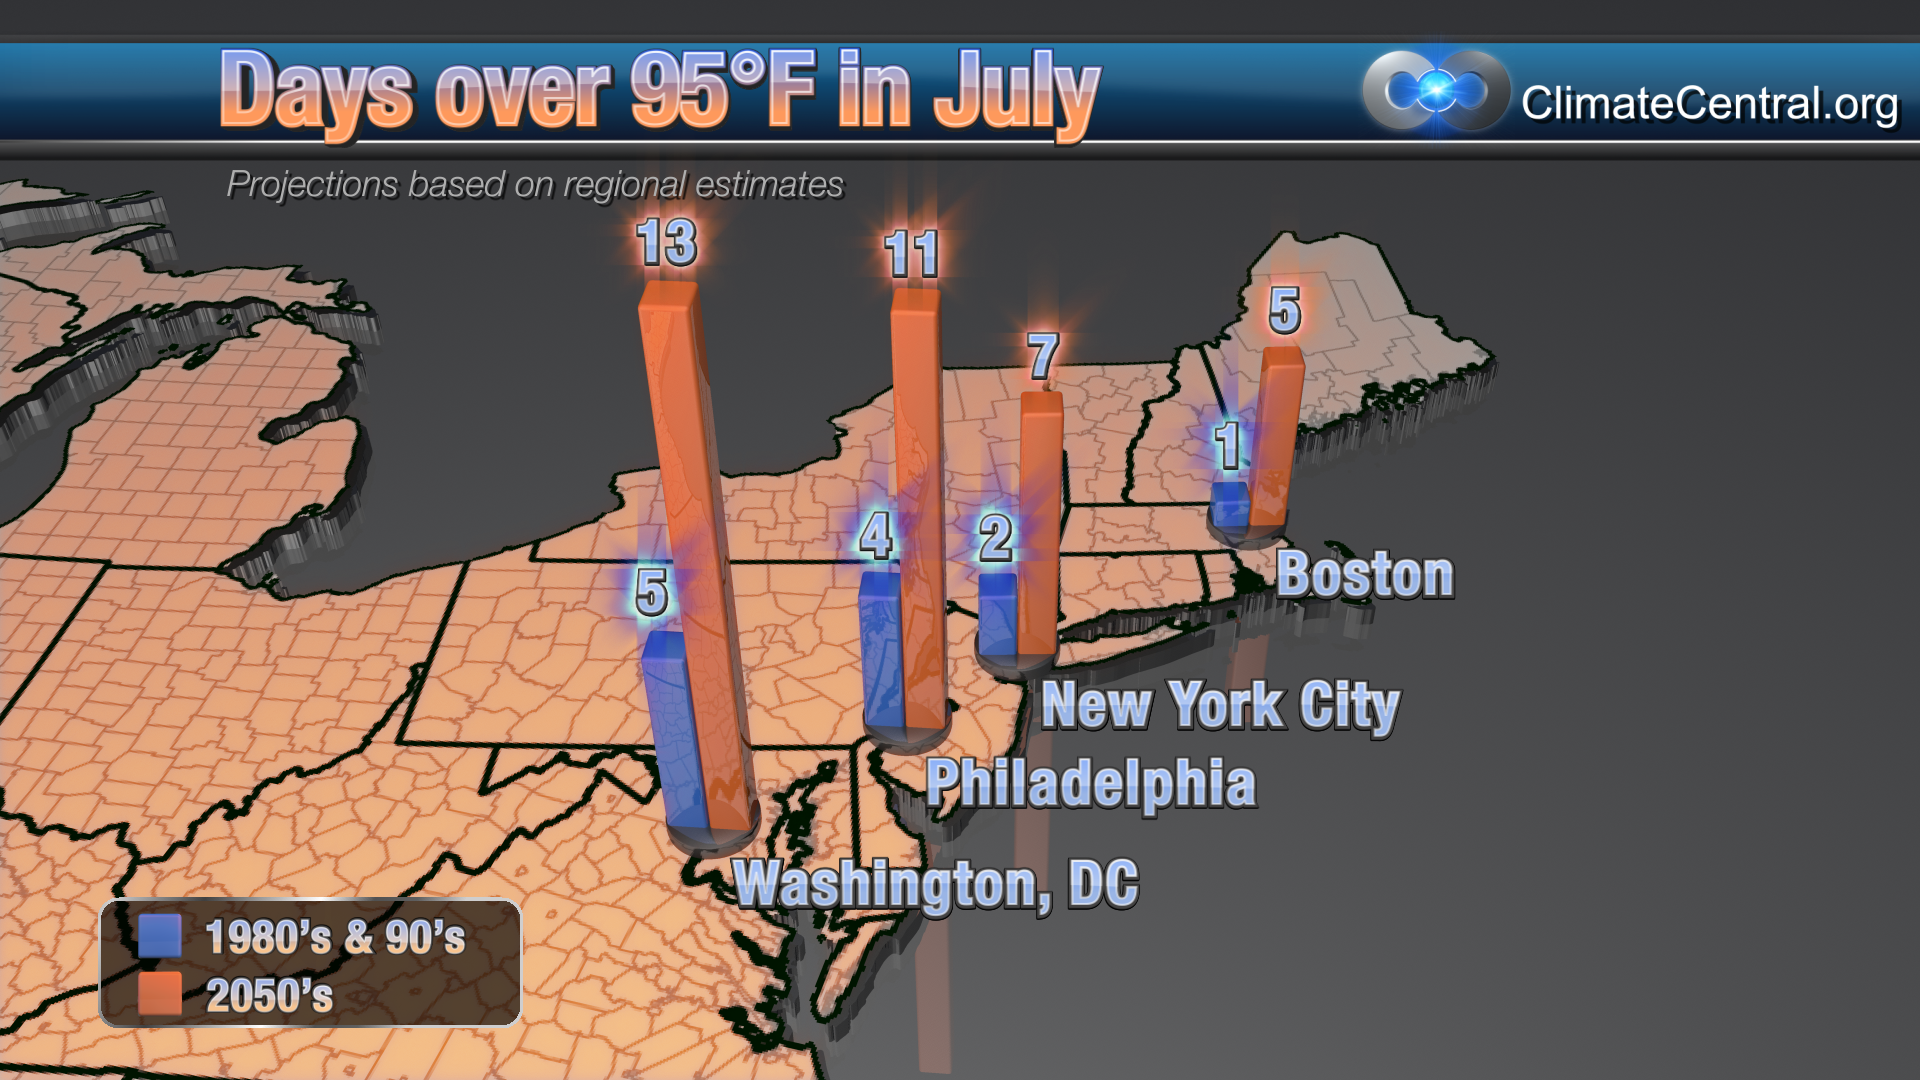 Northeast: July Days Over 95 Degrees